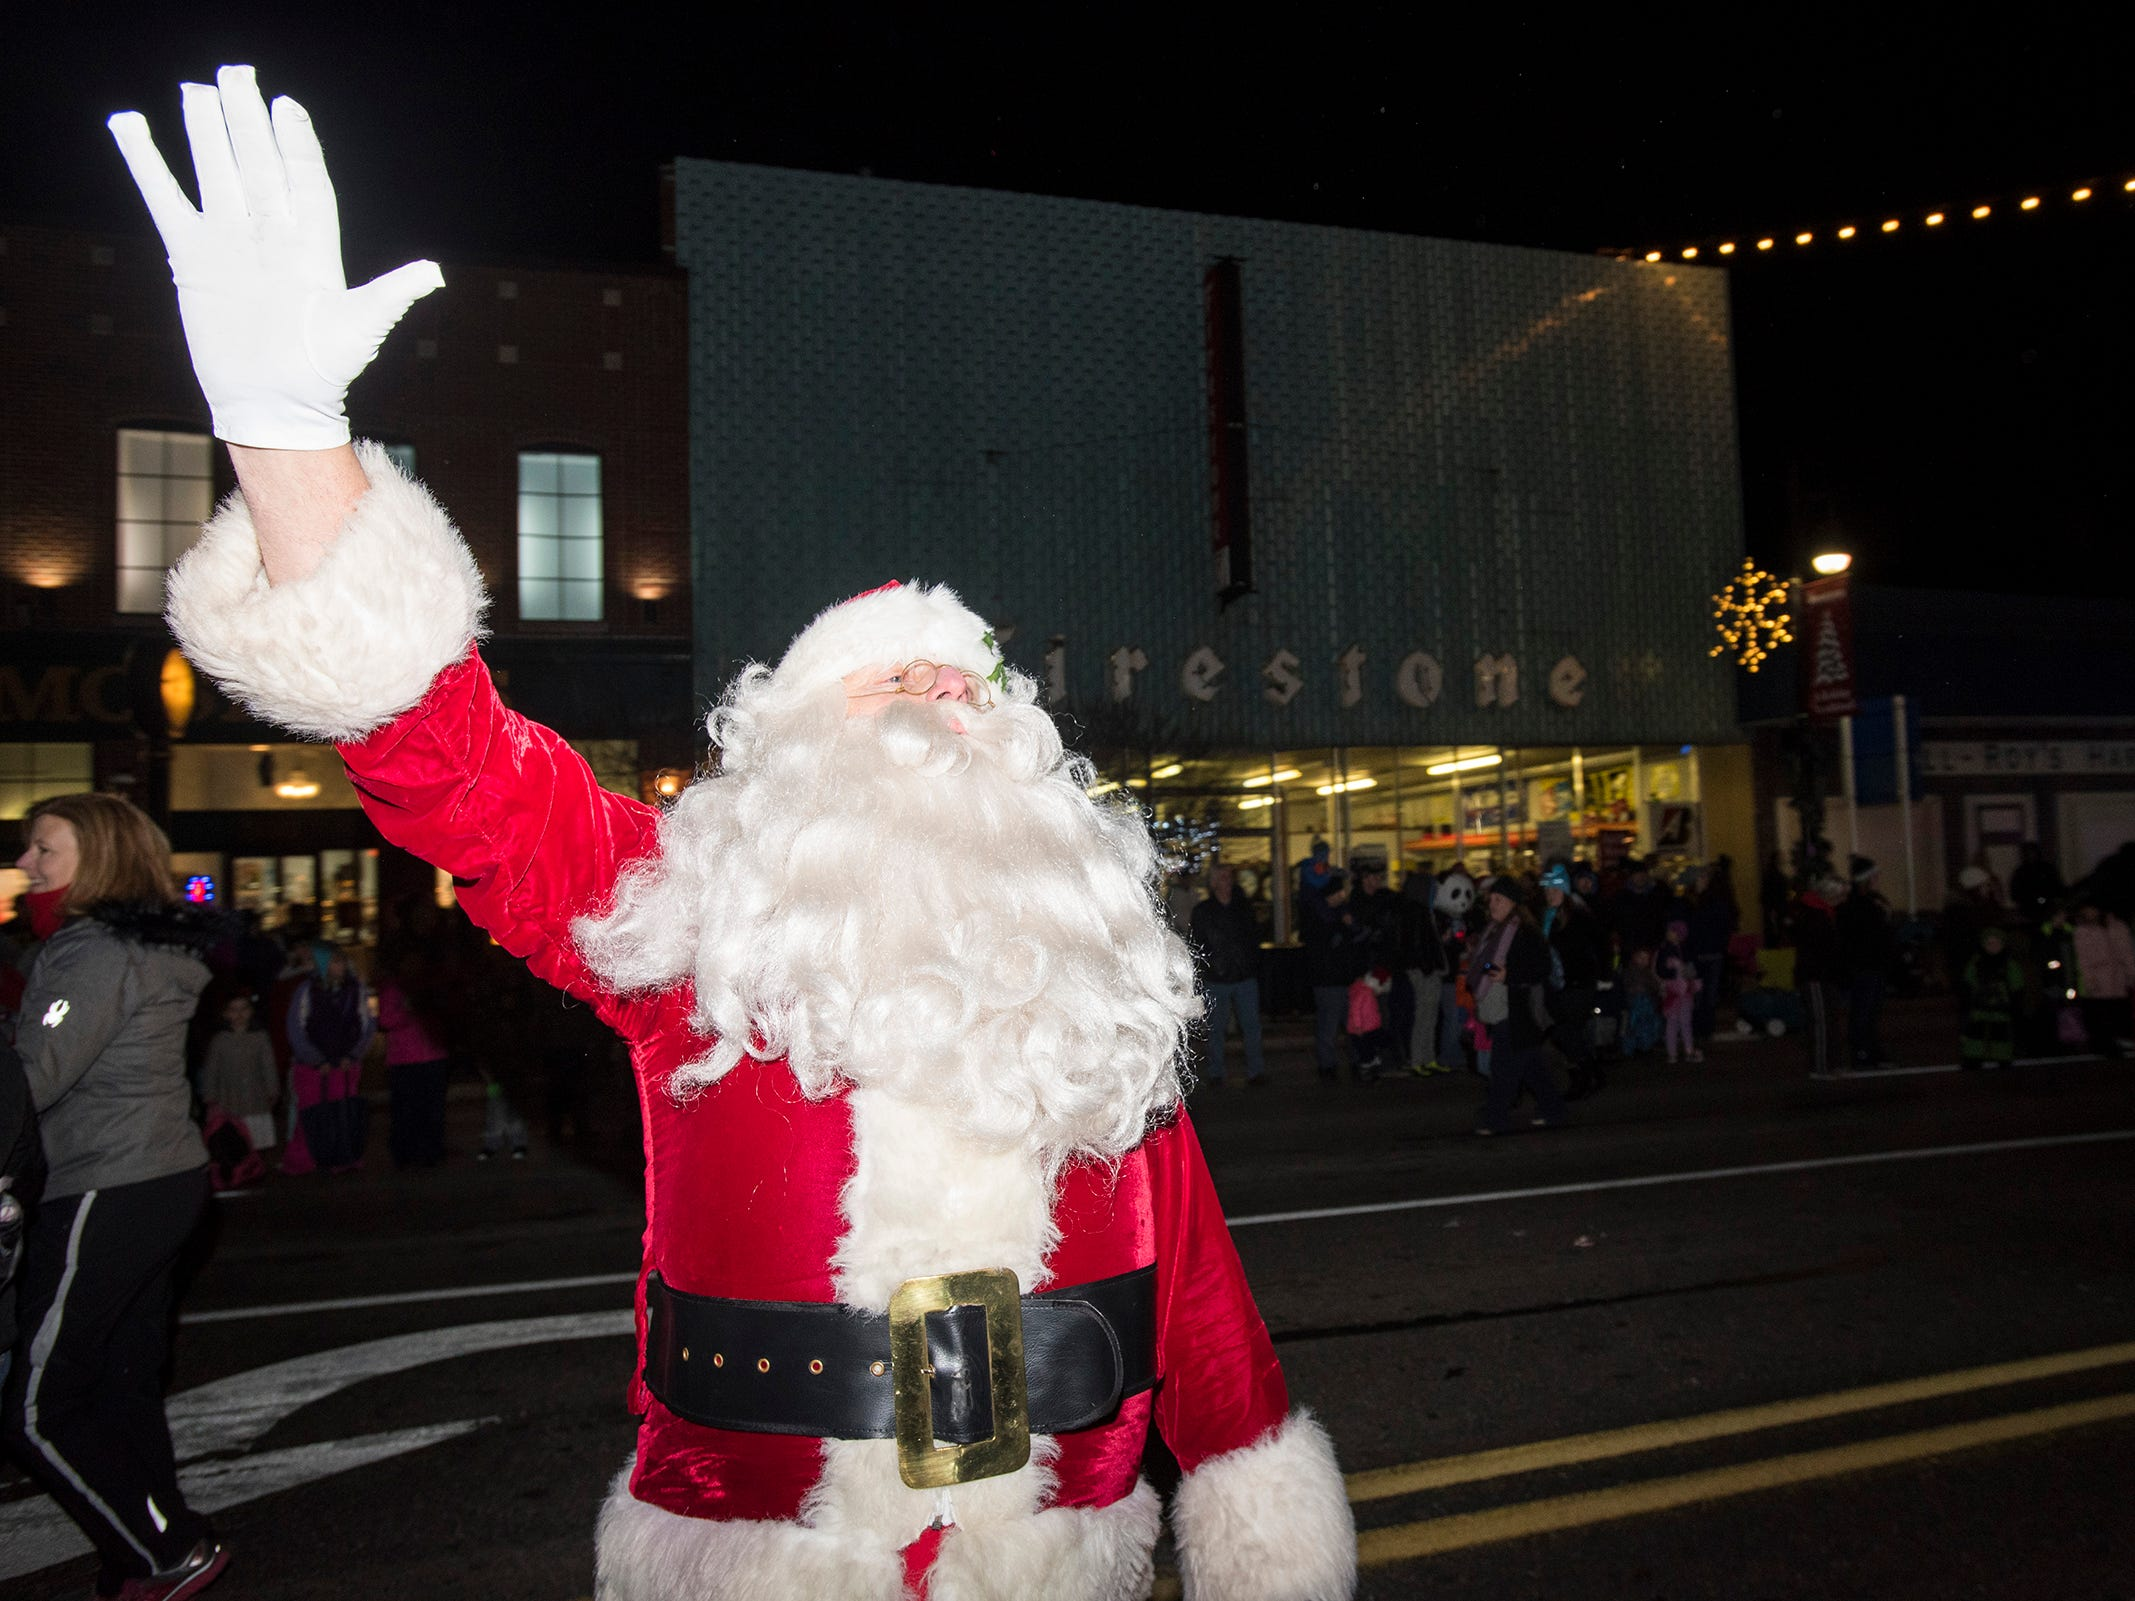 Santa Claus waves to spectators as he walks in Sperry's Santa Claus Parade Friday, Nov. 23, 2018 in downtown Port Huron.